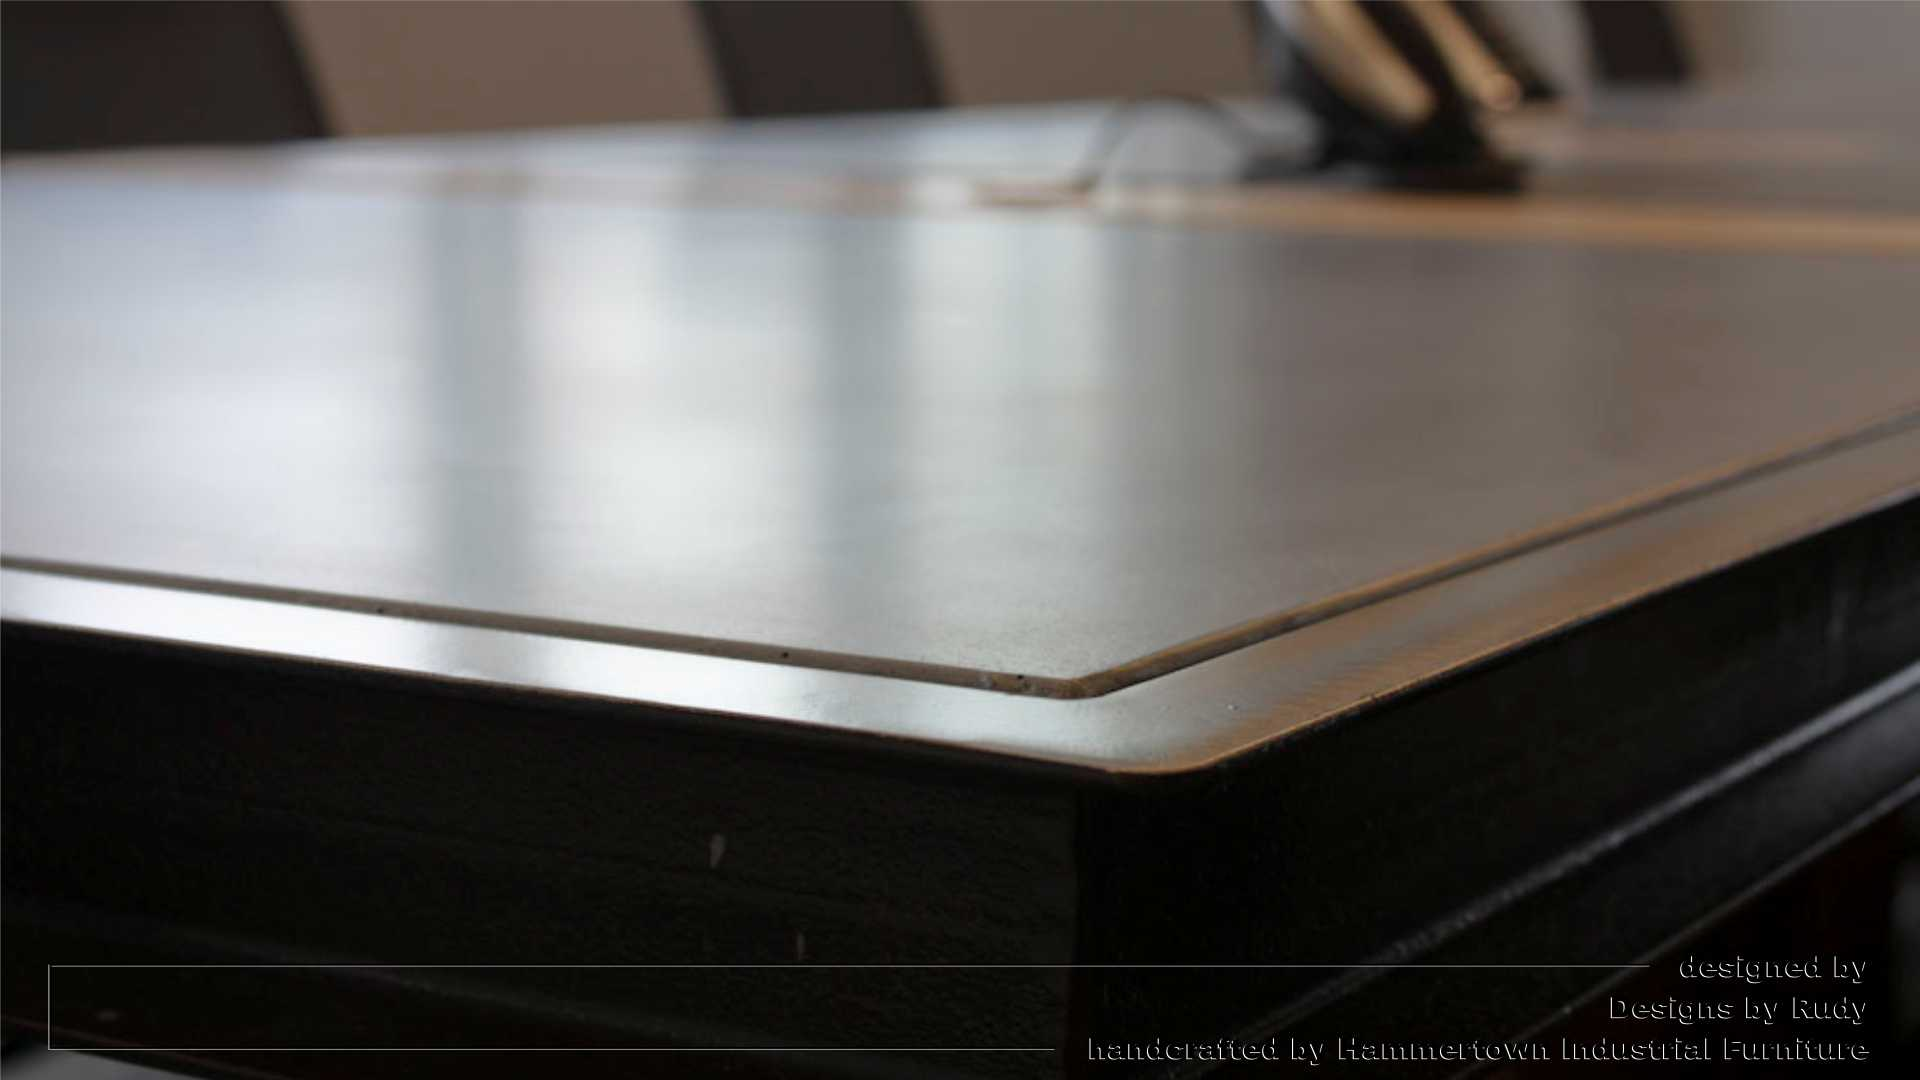 Concrete top and steel frame conference room table designed by Desings by Rudy steel corner detail 1